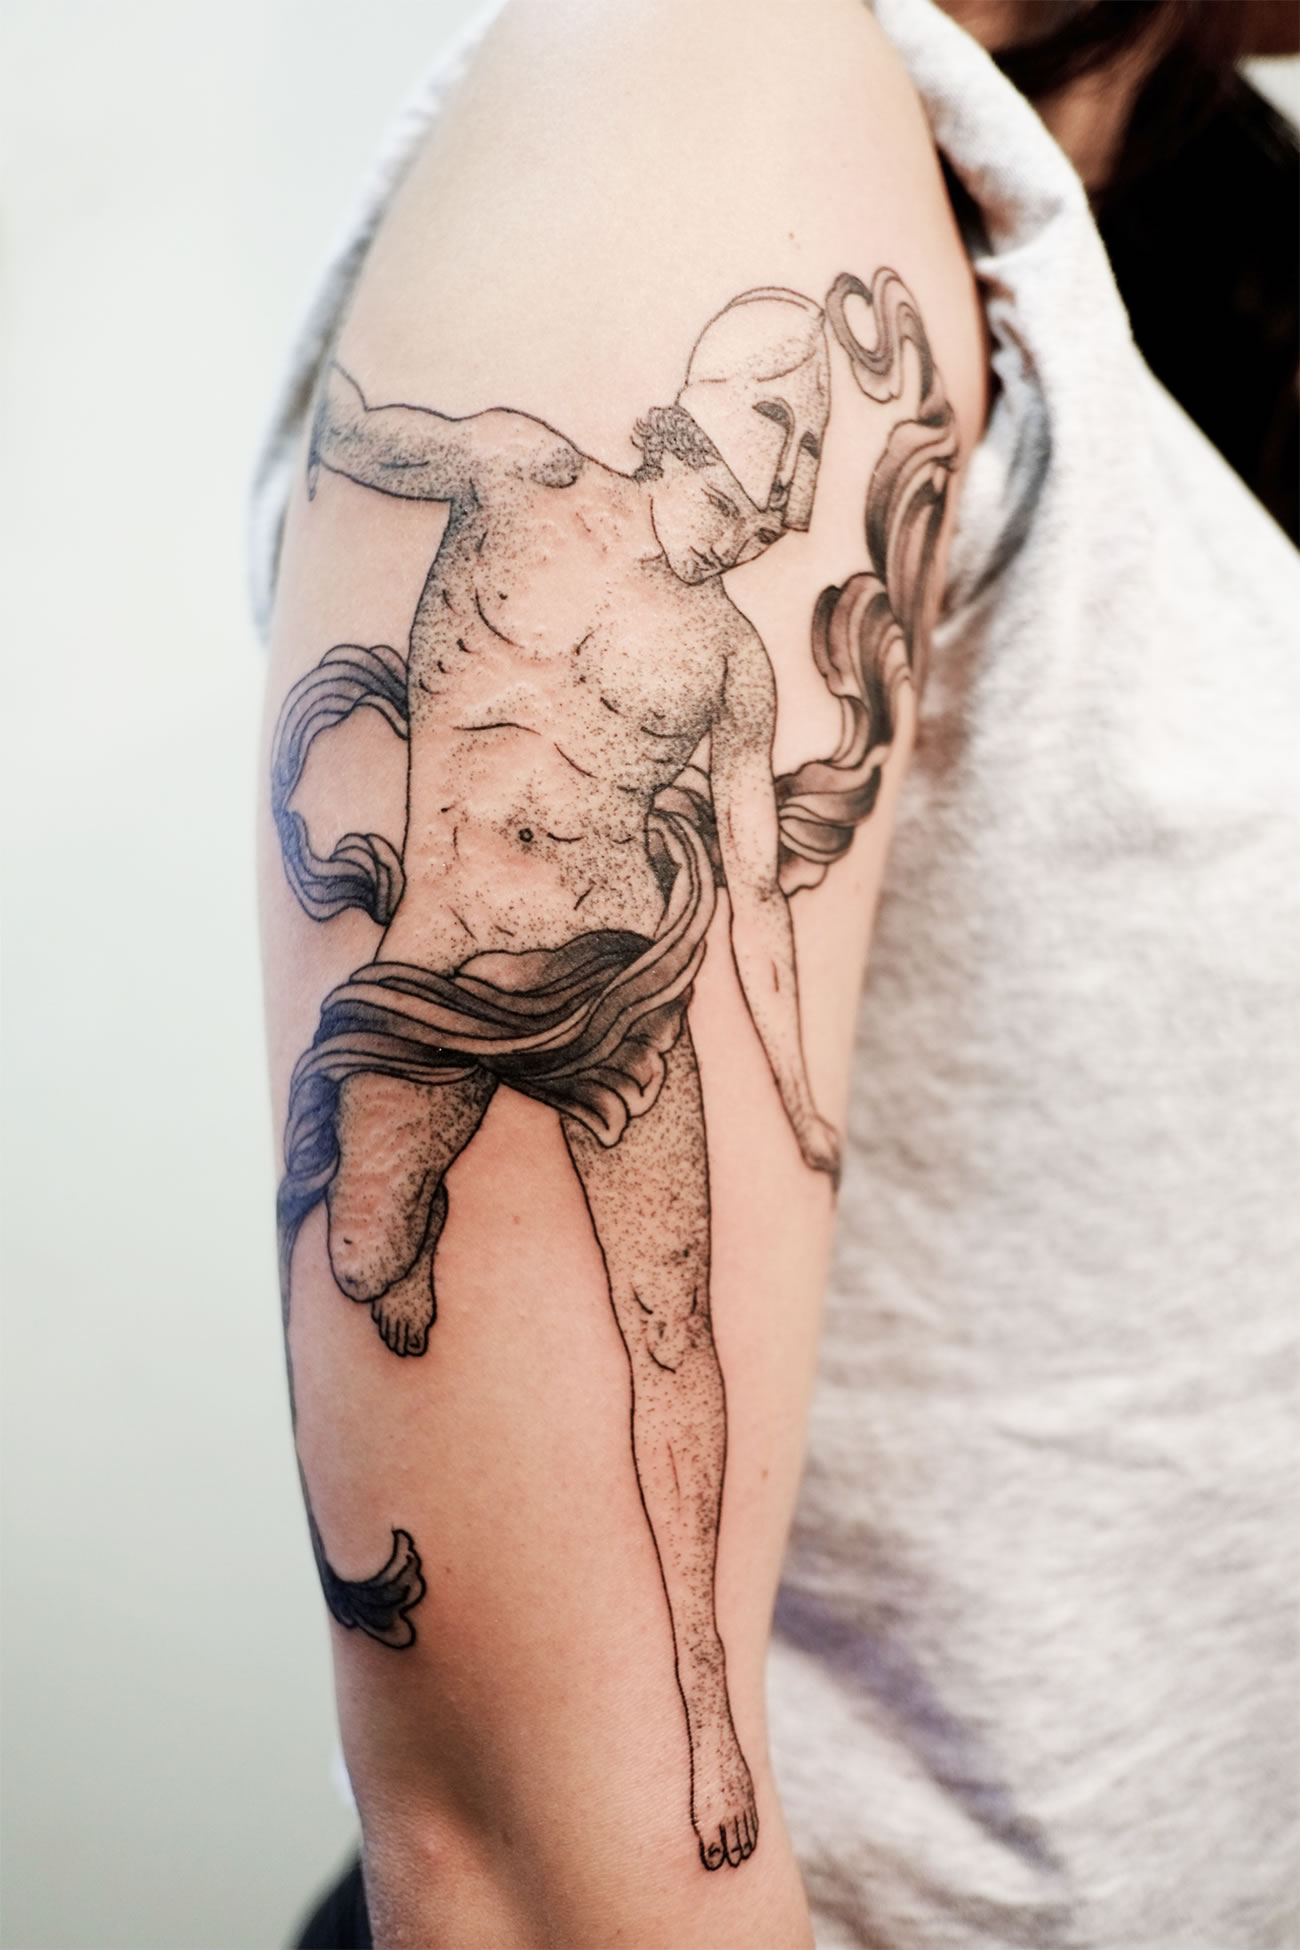 classical art greek man tattoo on arm by victor j webster